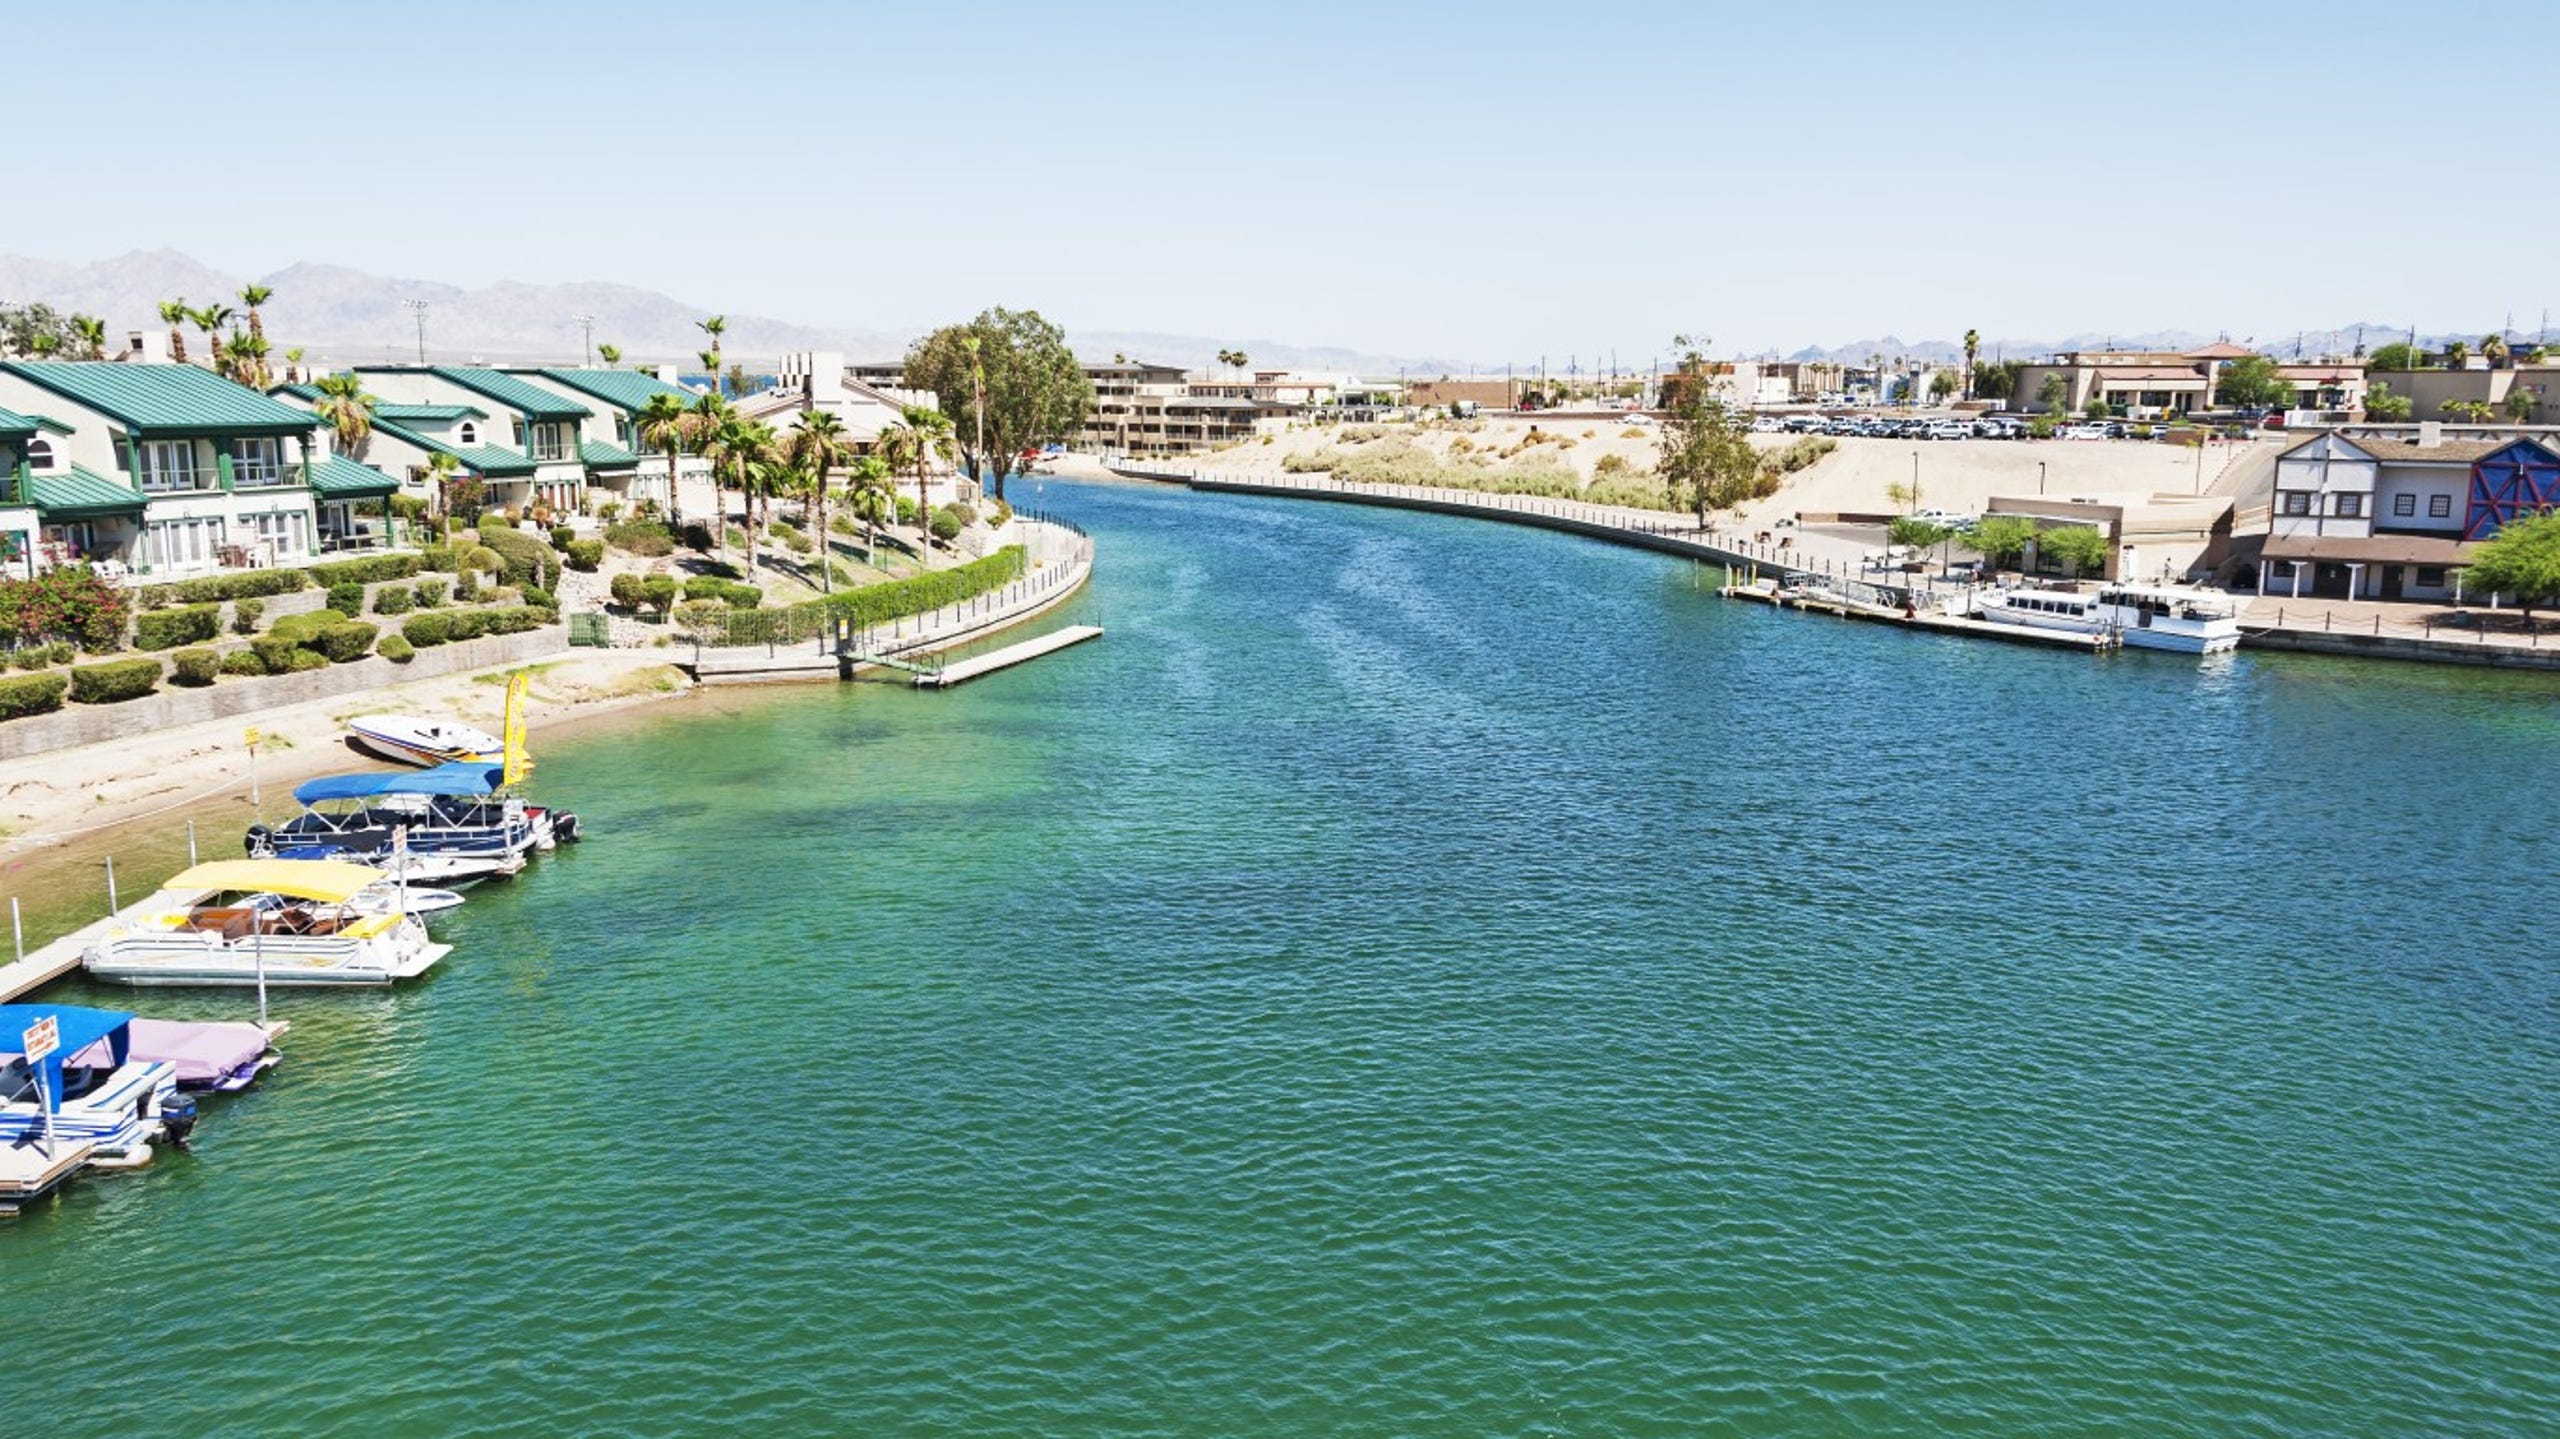 <strong>23. Lake Havasu City-Kingman, Arizona</strong><br /> <strong>&bull; Preschool enrollment:</strong> 32.6% (lowest 20%)<br /> <strong>&bull; High school graduation rate:</strong> 83.4%<br /> <strong>&bull; Pop. with access to areas for exercise:</strong> 65.6% (lowest 20%)<br /> <strong>&bull; Property crime rate:</strong> 3,227 crimes per 100,000 people (highest 20%)